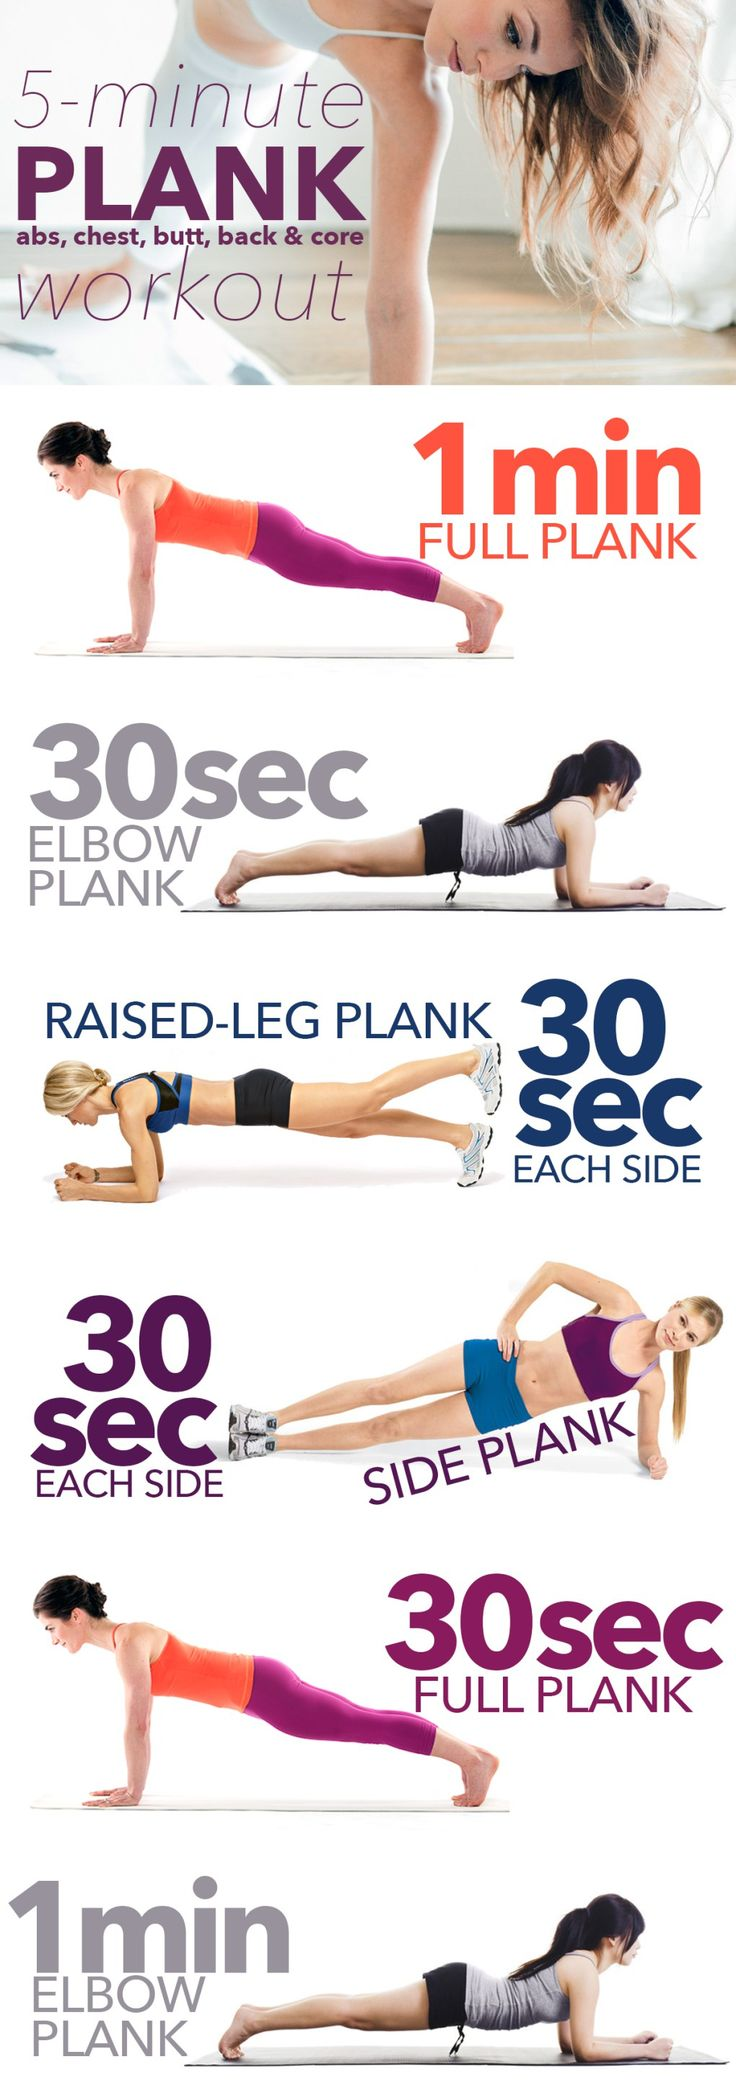 5-minute-plank-workout-infographic